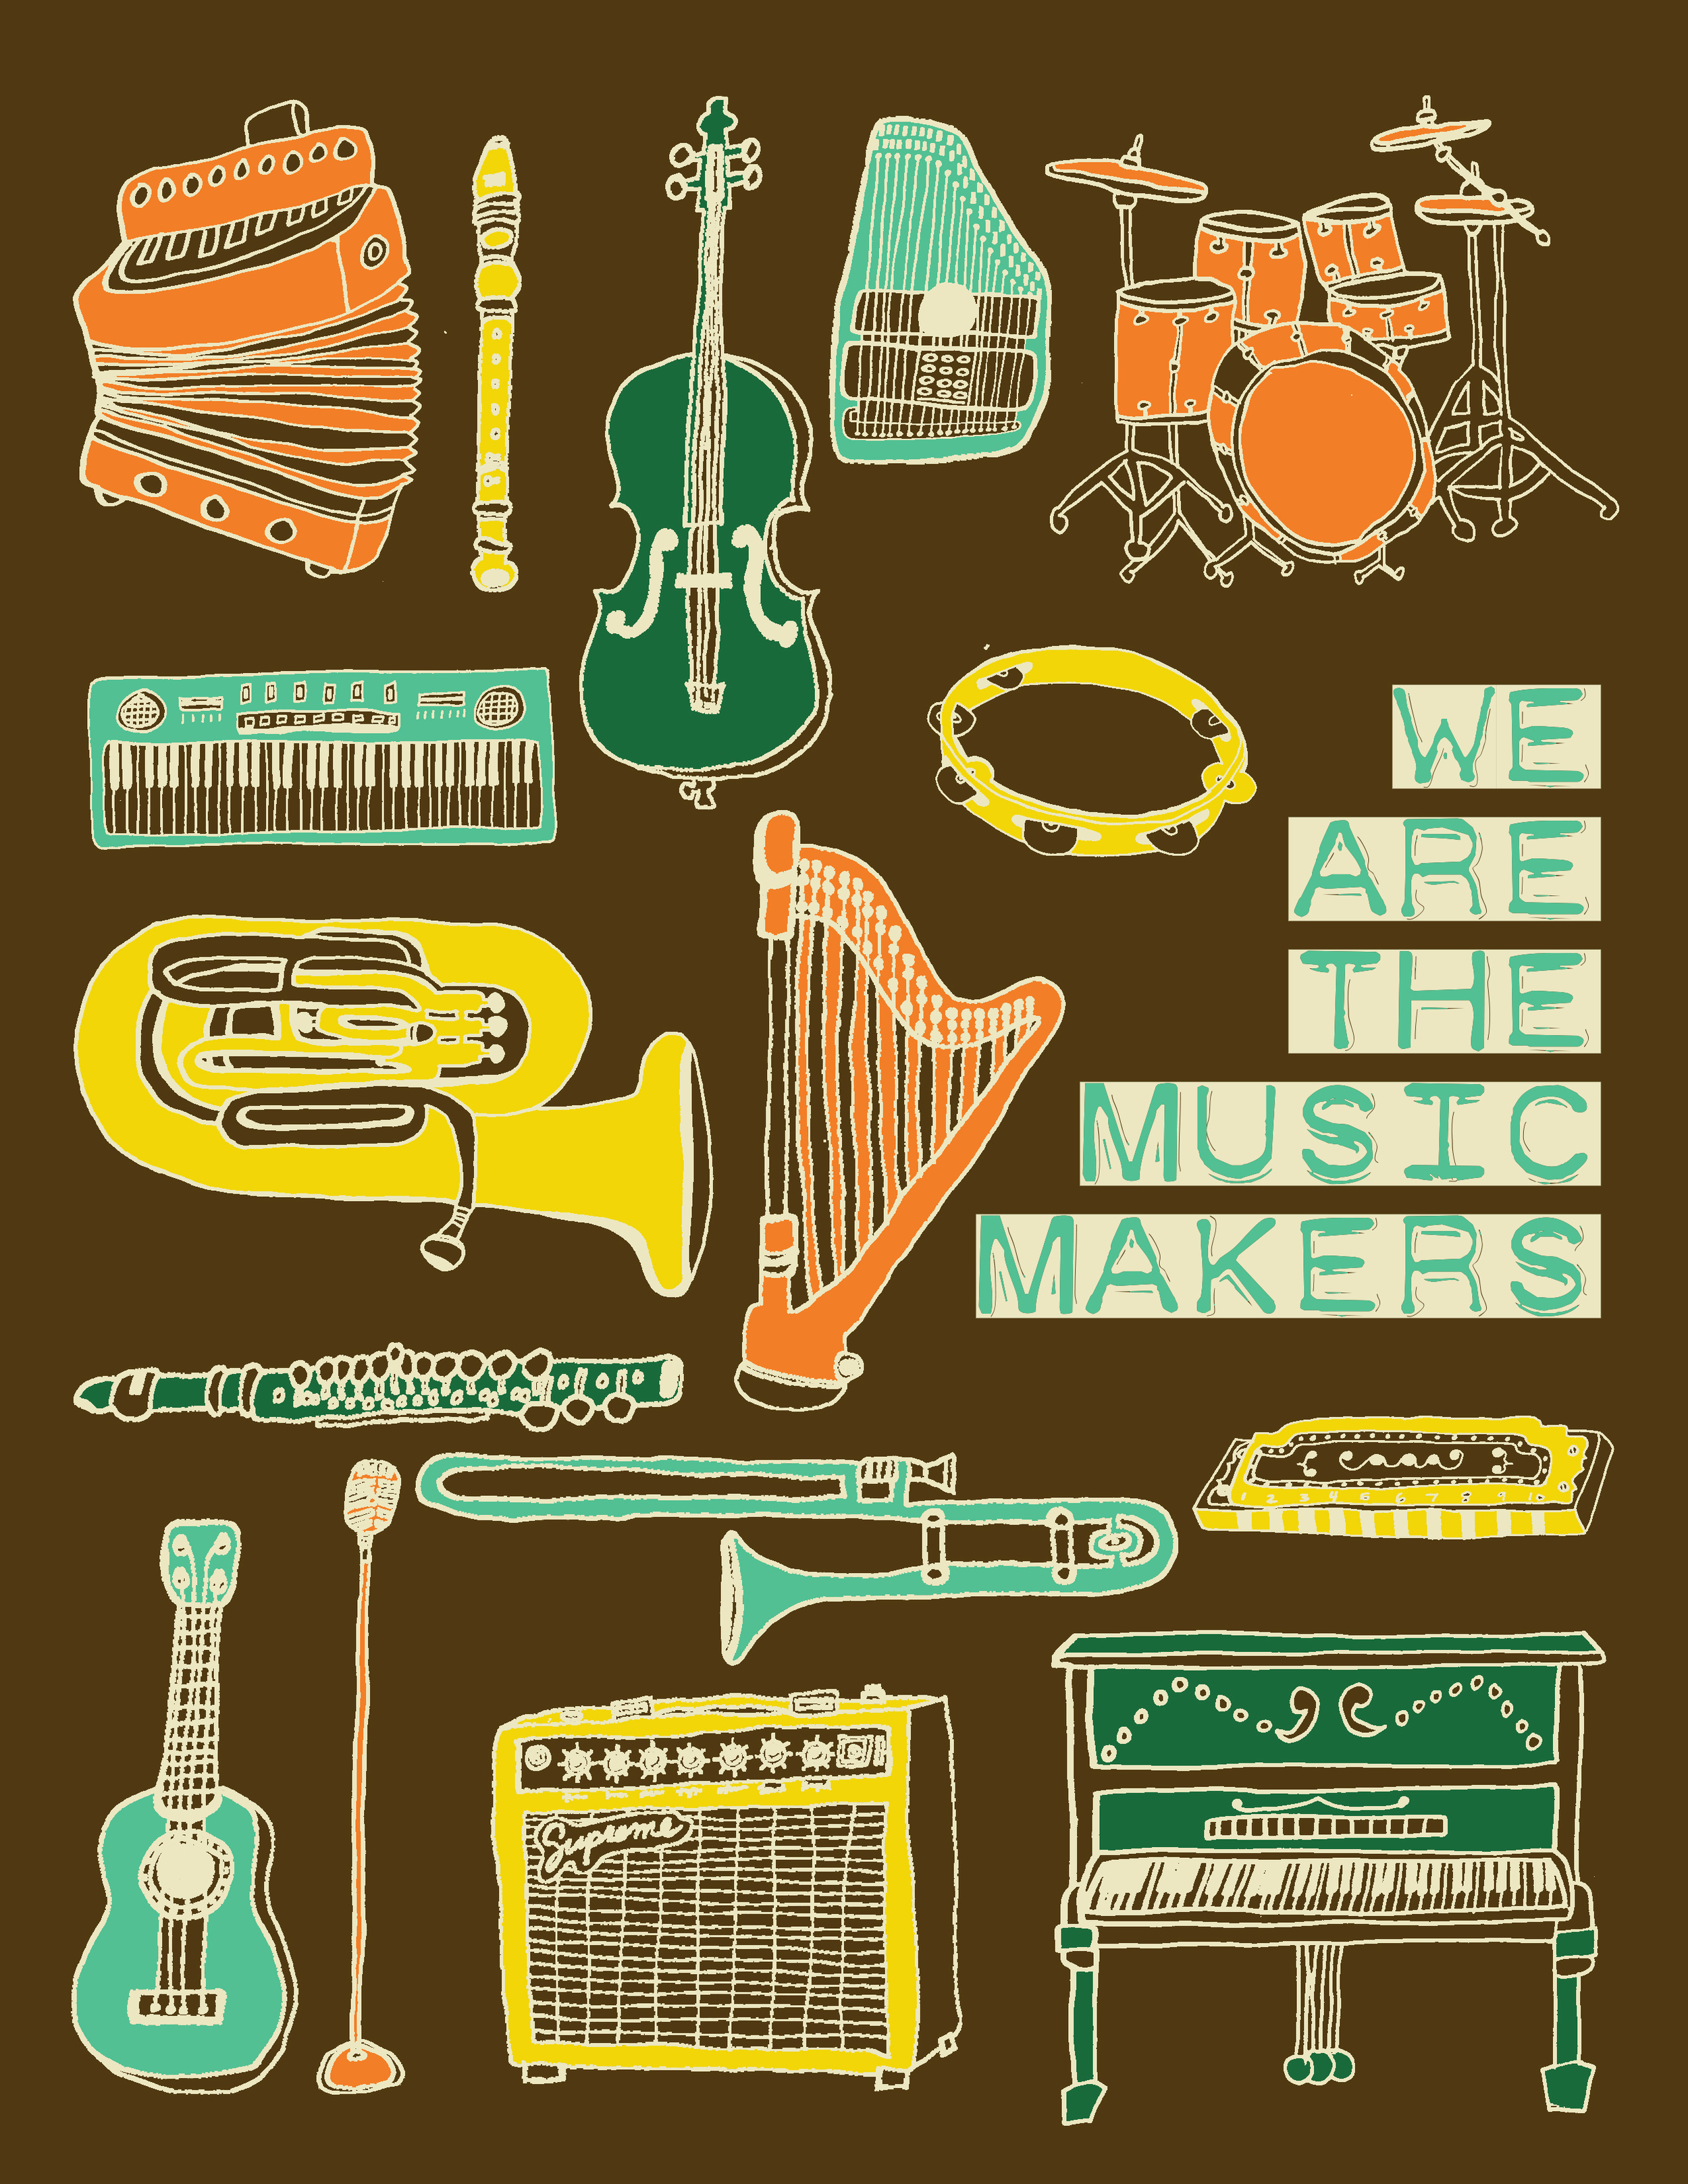 we are the music makers.jpg